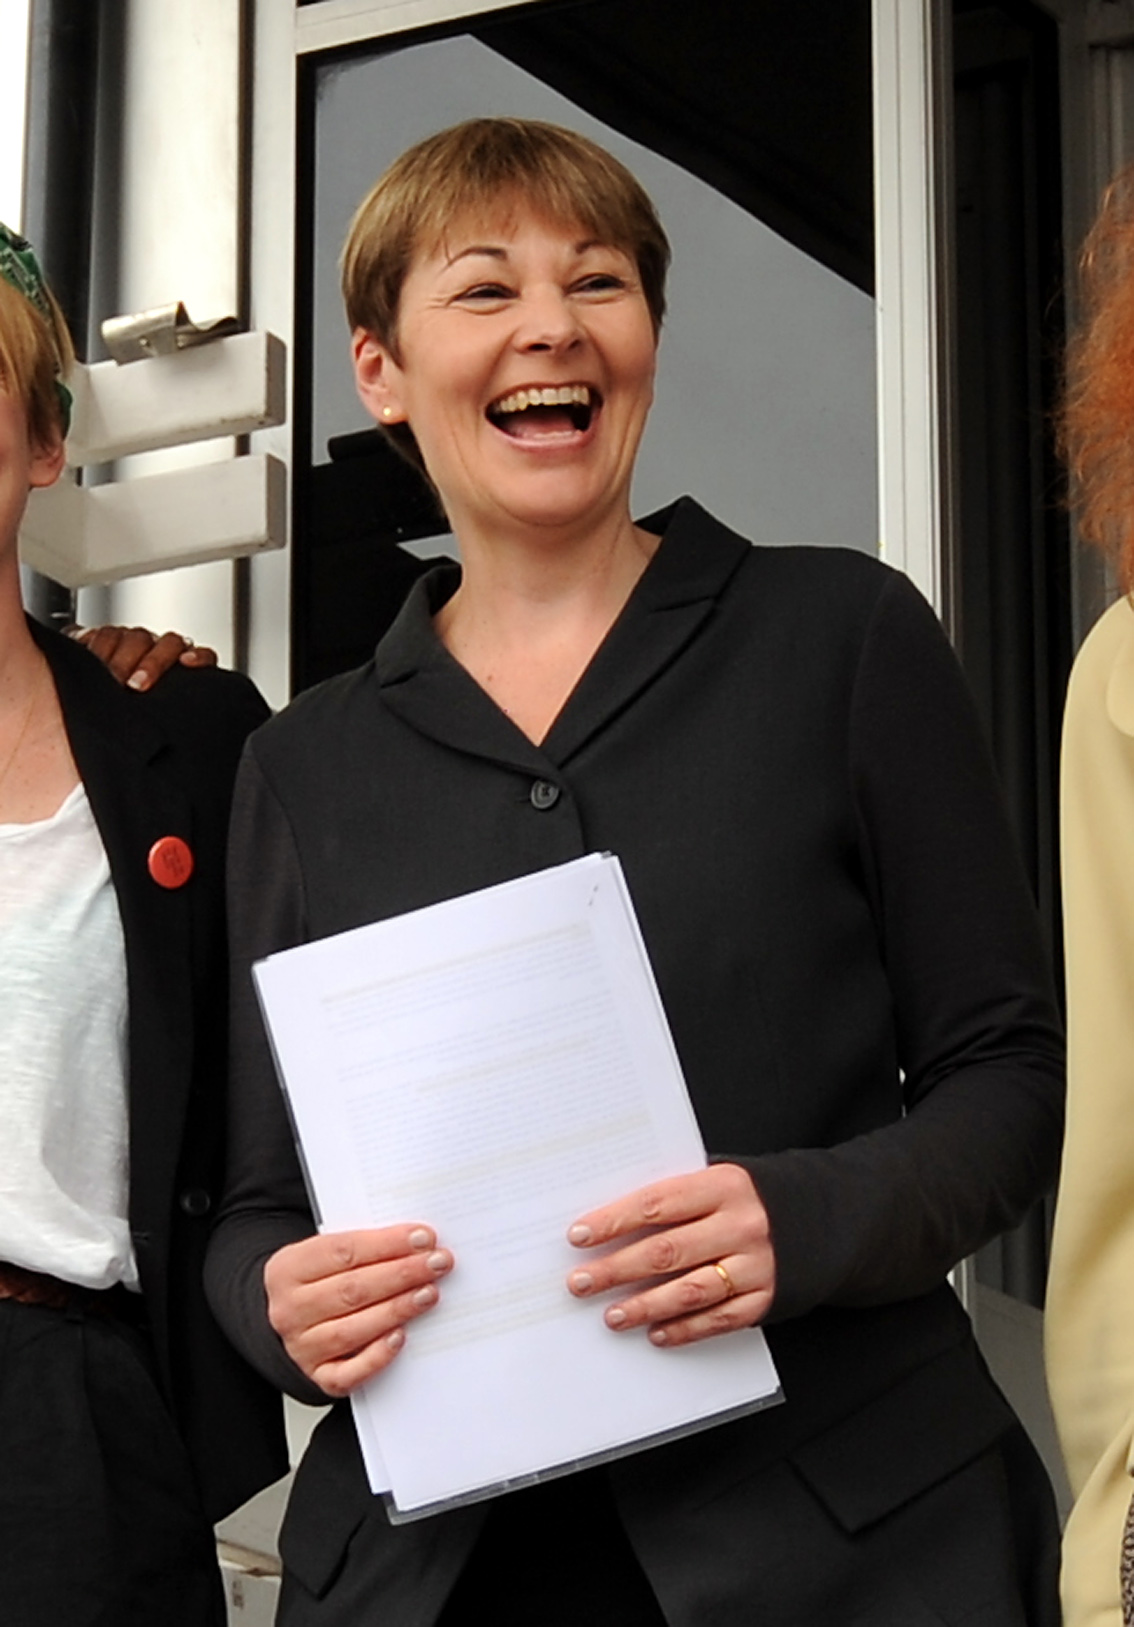 Caroline Lucas found not guilty in anti-fracking protest trial